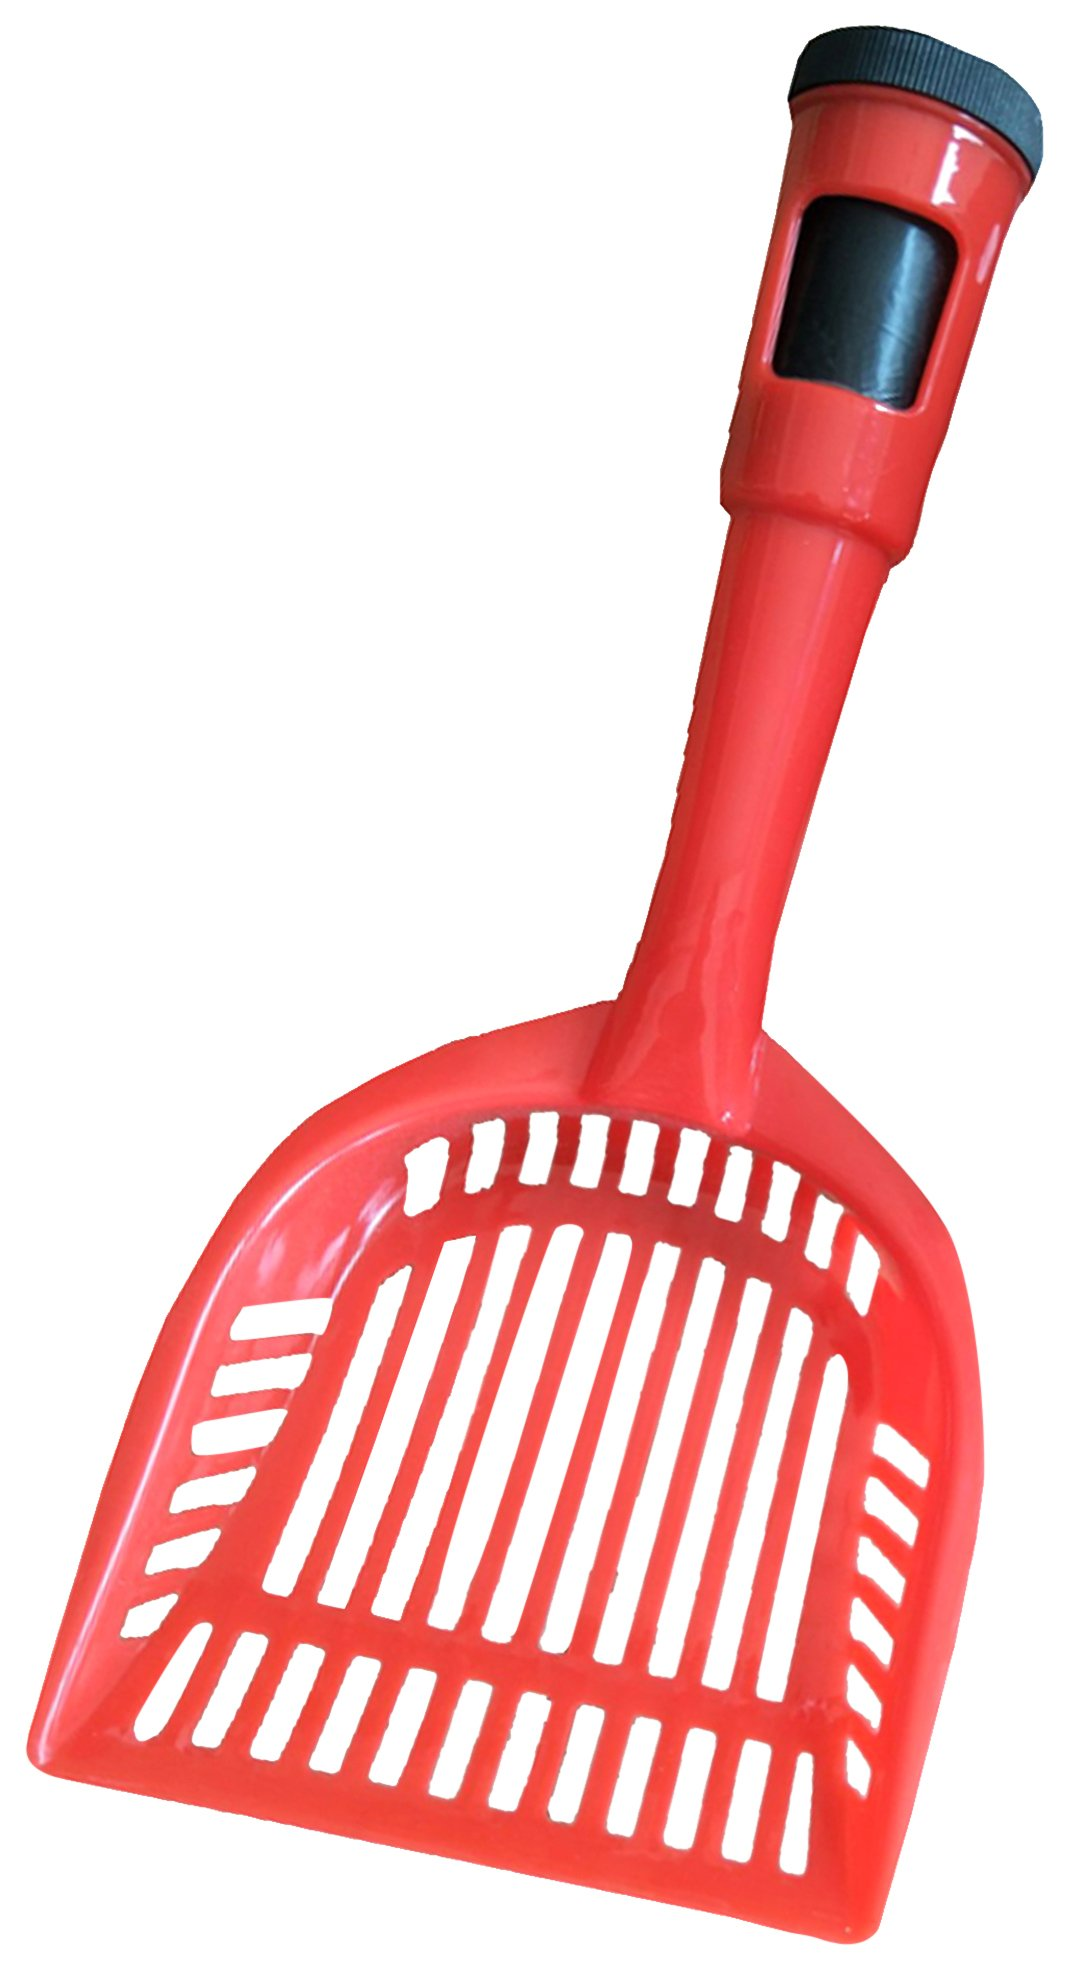 Pet Life Poopin-Scoopin' Dog and Cat Kitty Litter Waste Pooper Scooper Shovel w/Built-in Waste Bag Holder, One Size, Red